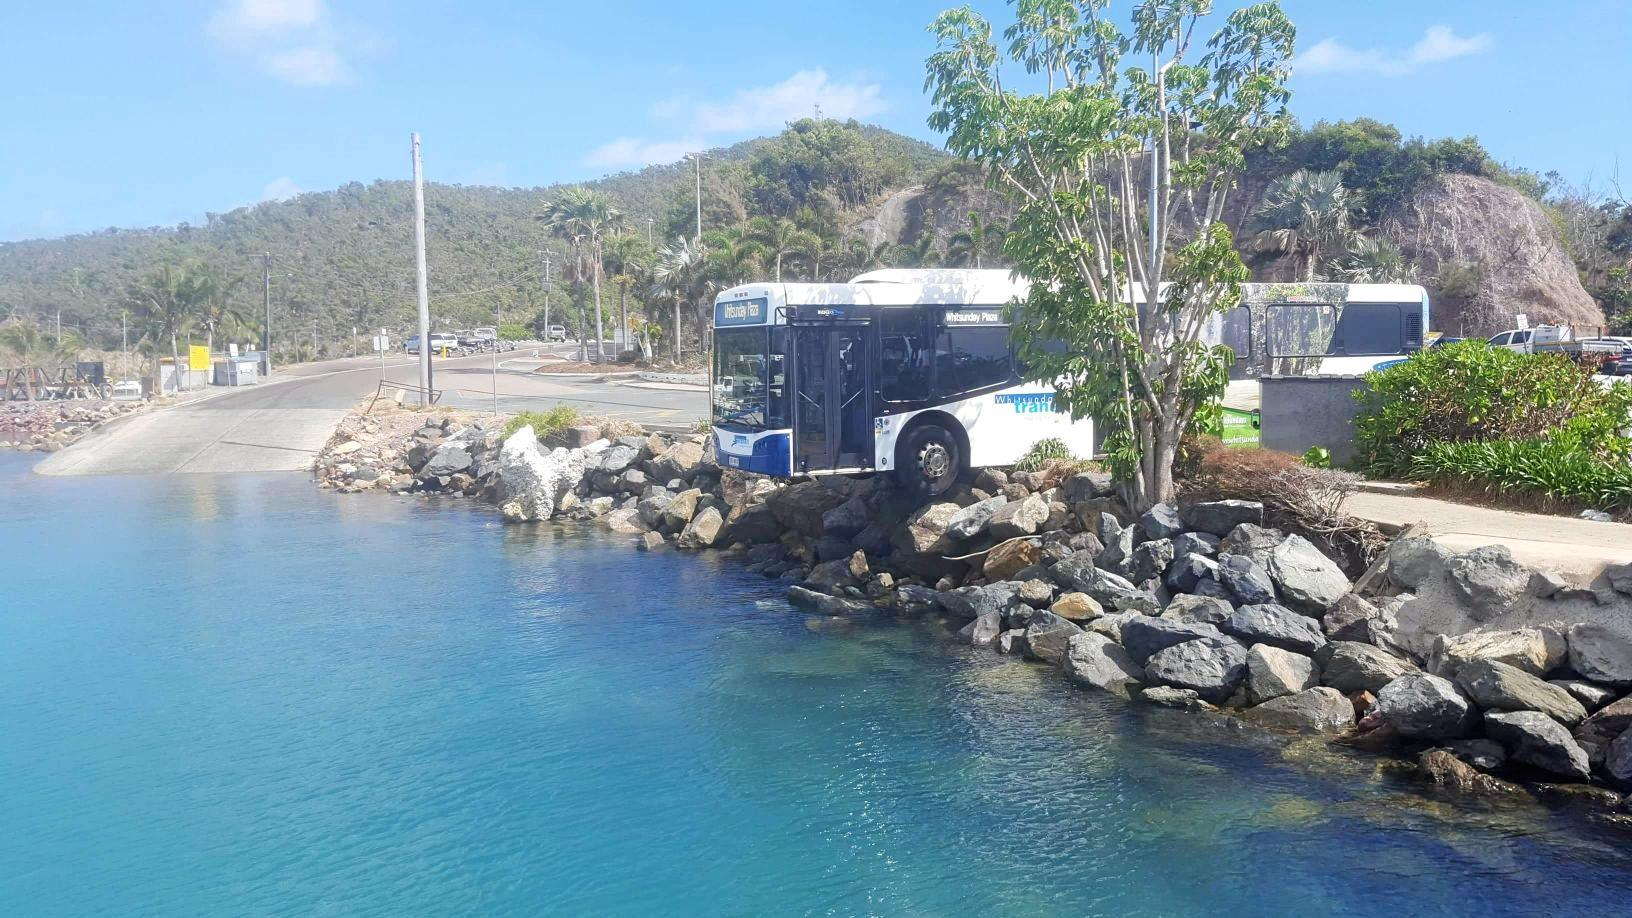 A bus rolled over the road edge at Shute Harbour this morning.